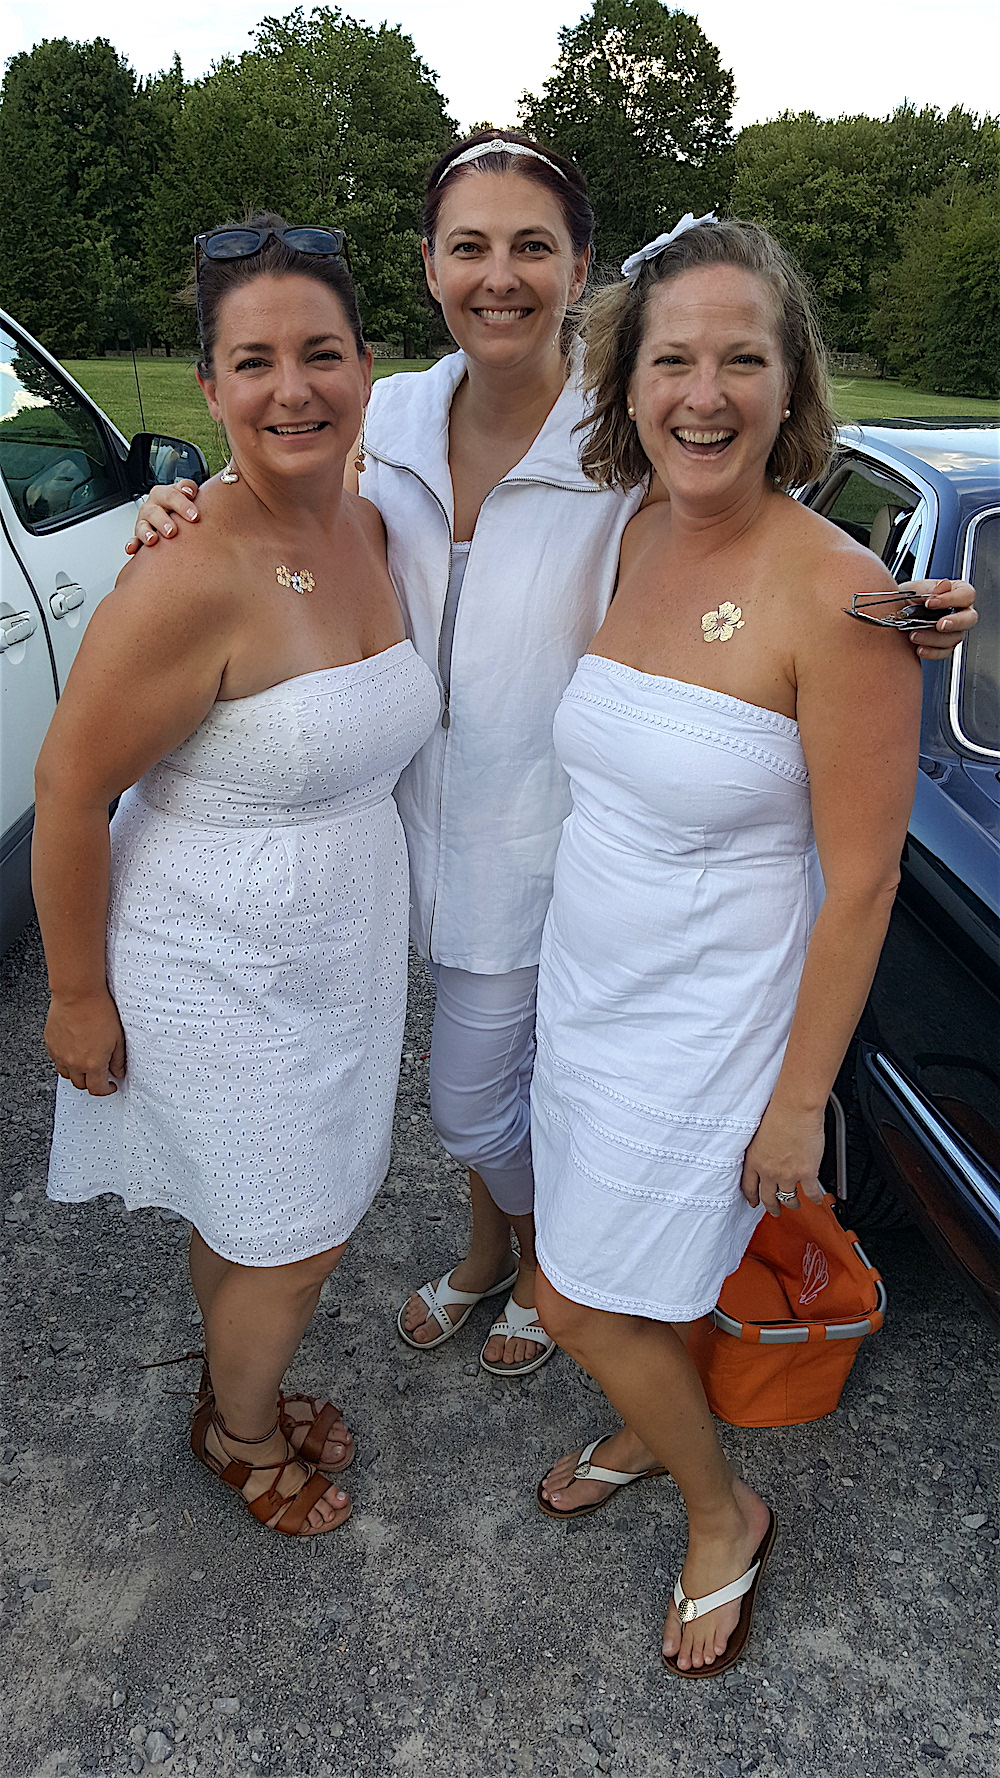 From left, Sharon Deaver, Johnna Easter and Megan Venable. We ran into them in the parking lot and plotted to put our tables next to each other.